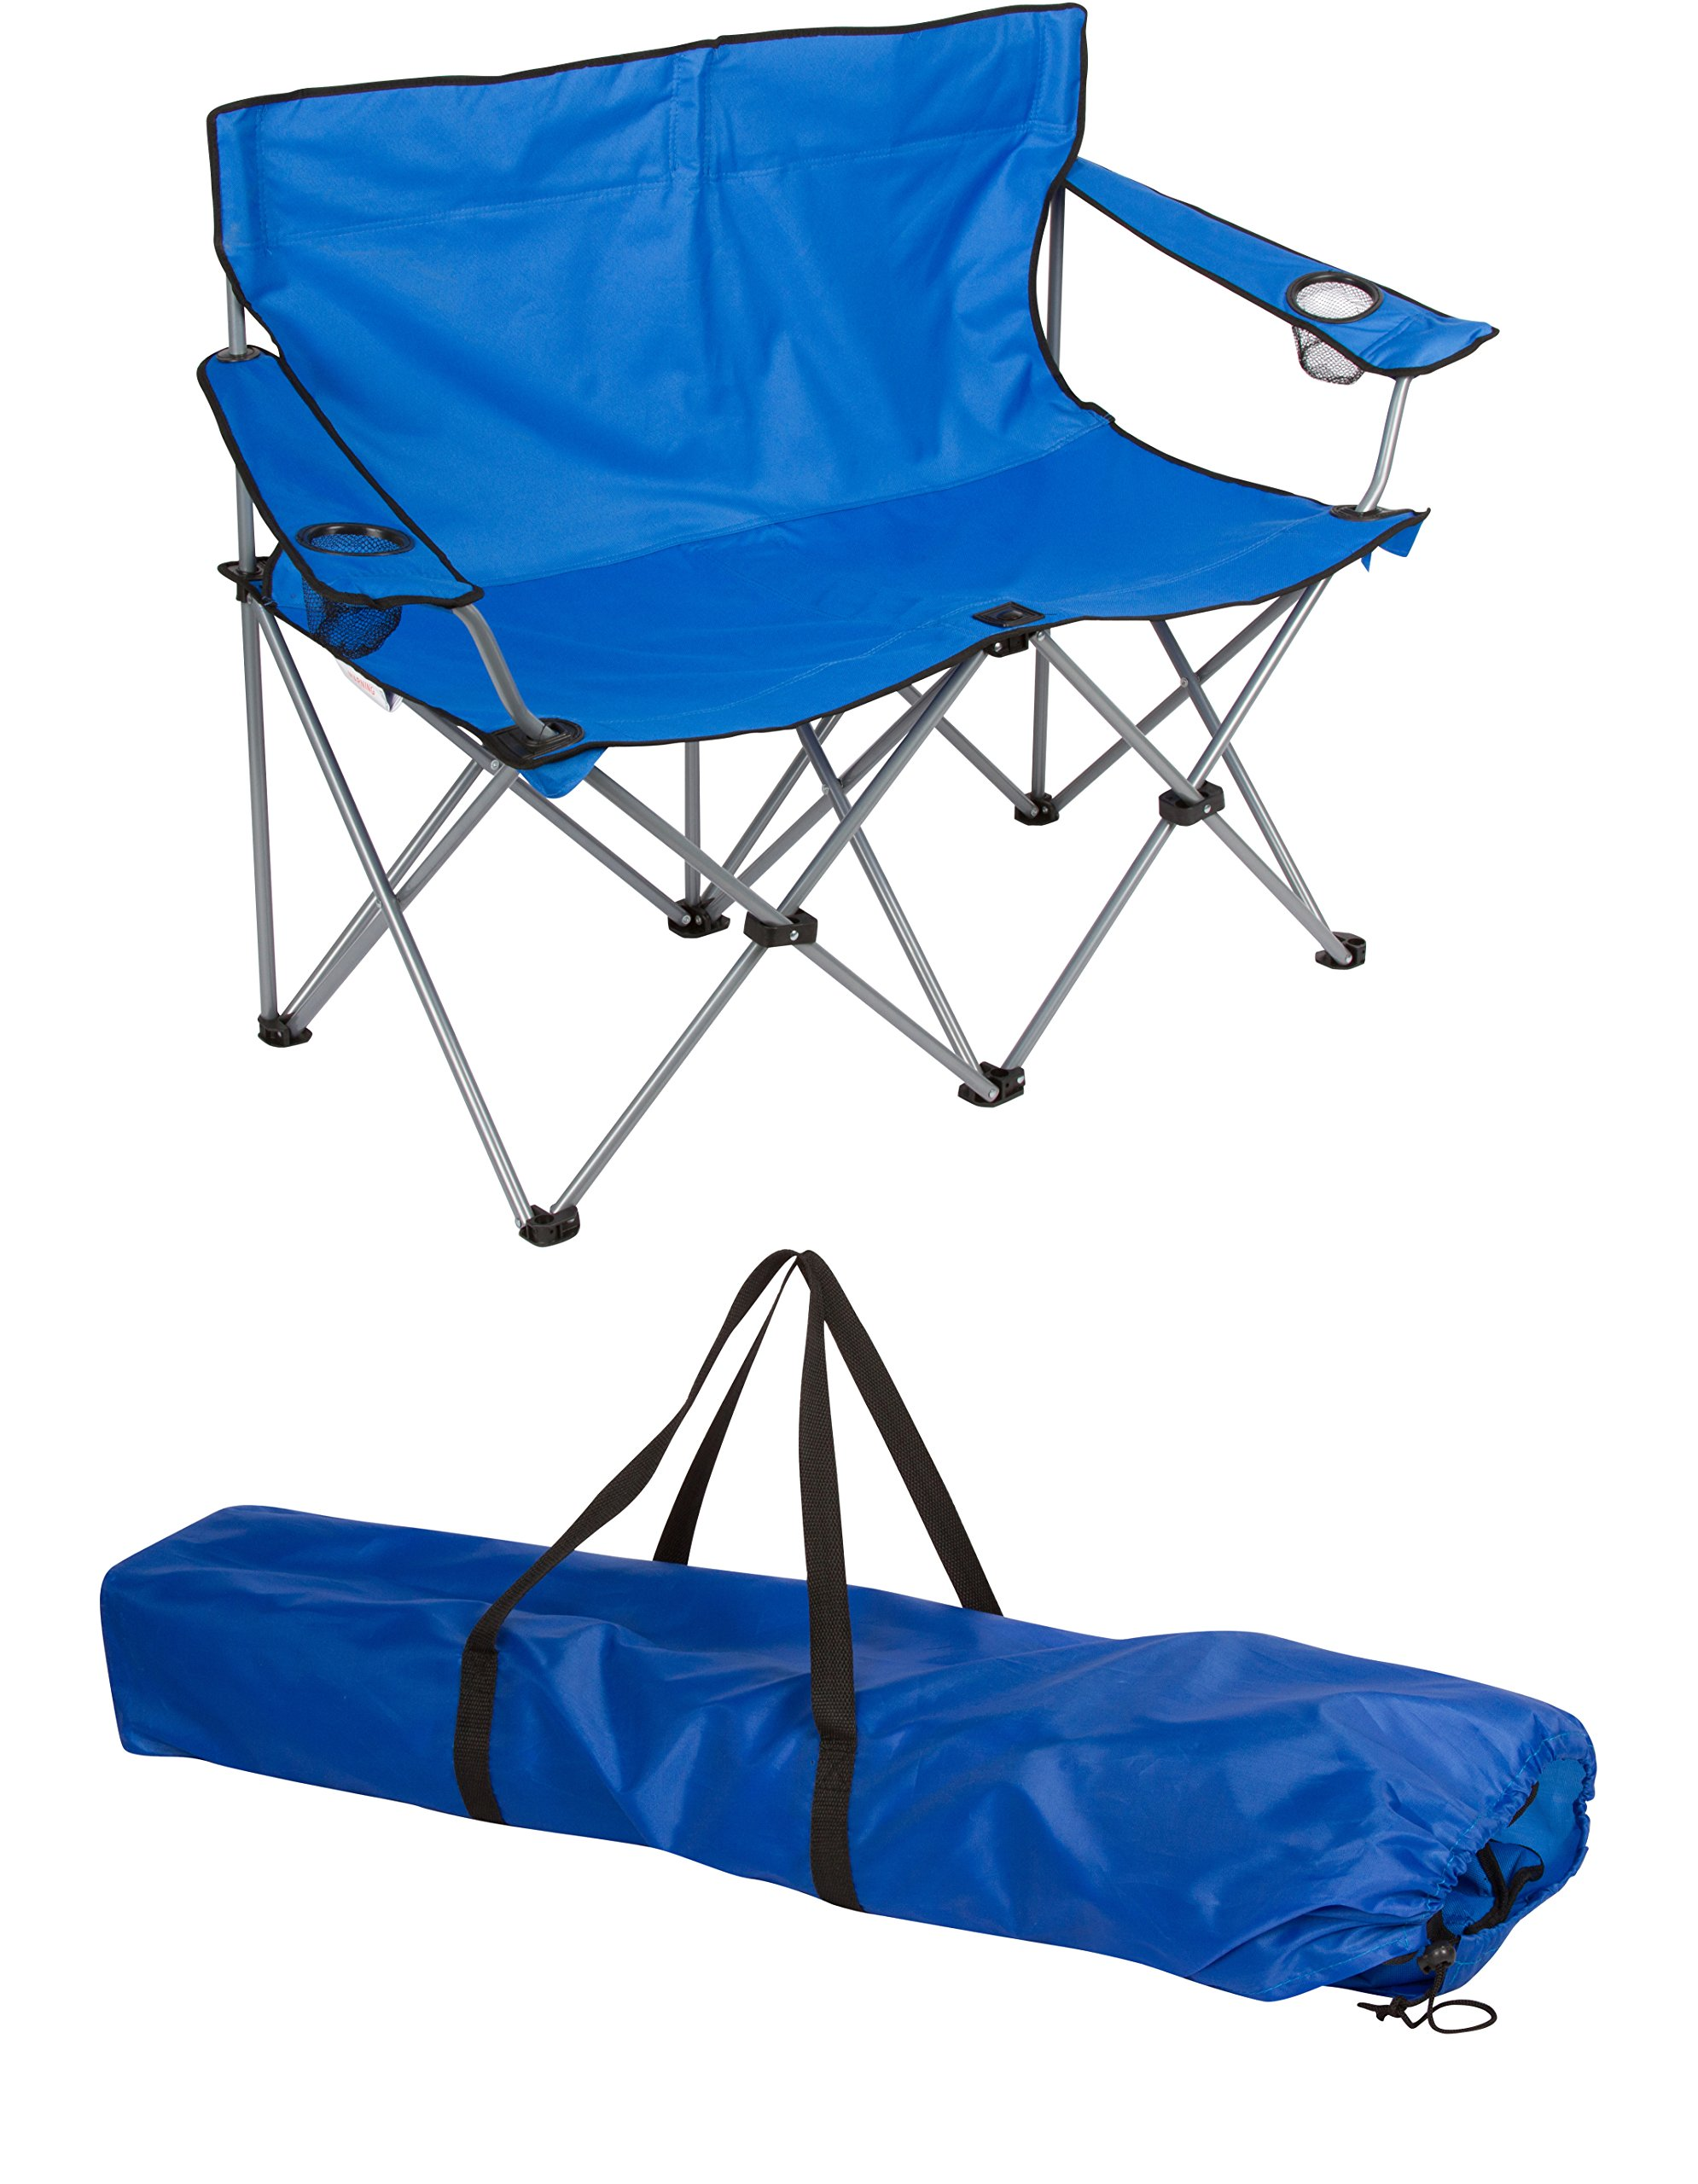 Loveseat Style Camp Chair - Steel Frame - Double Seater - by Trademark Innovations (Blue, 31.5''H)